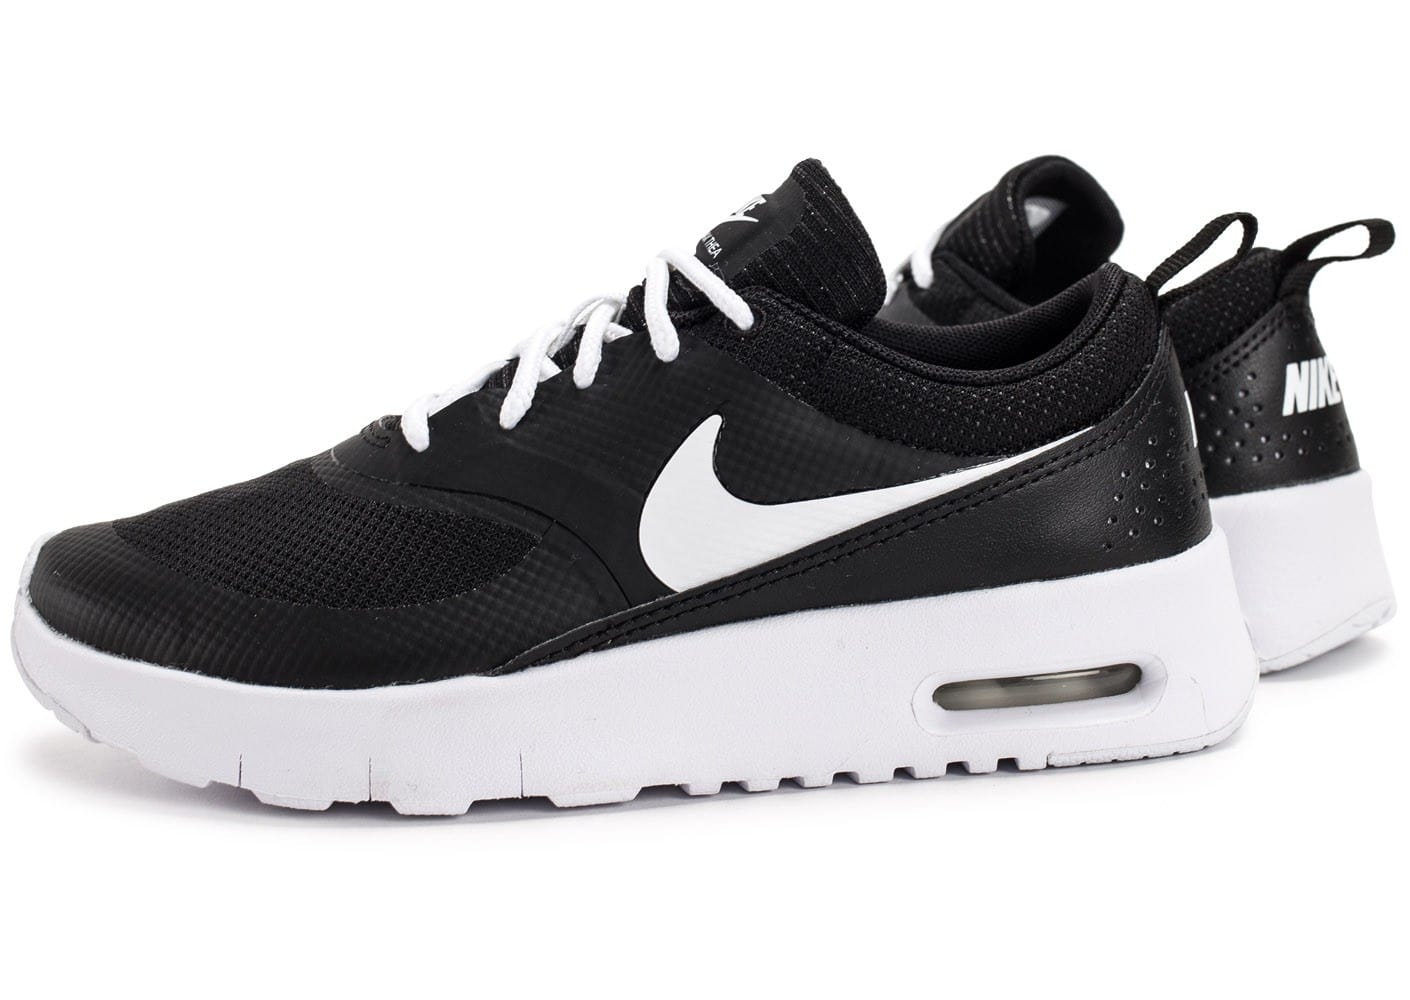 nike air max thea enfant noire et blanche chaussures enfant chausport. Black Bedroom Furniture Sets. Home Design Ideas